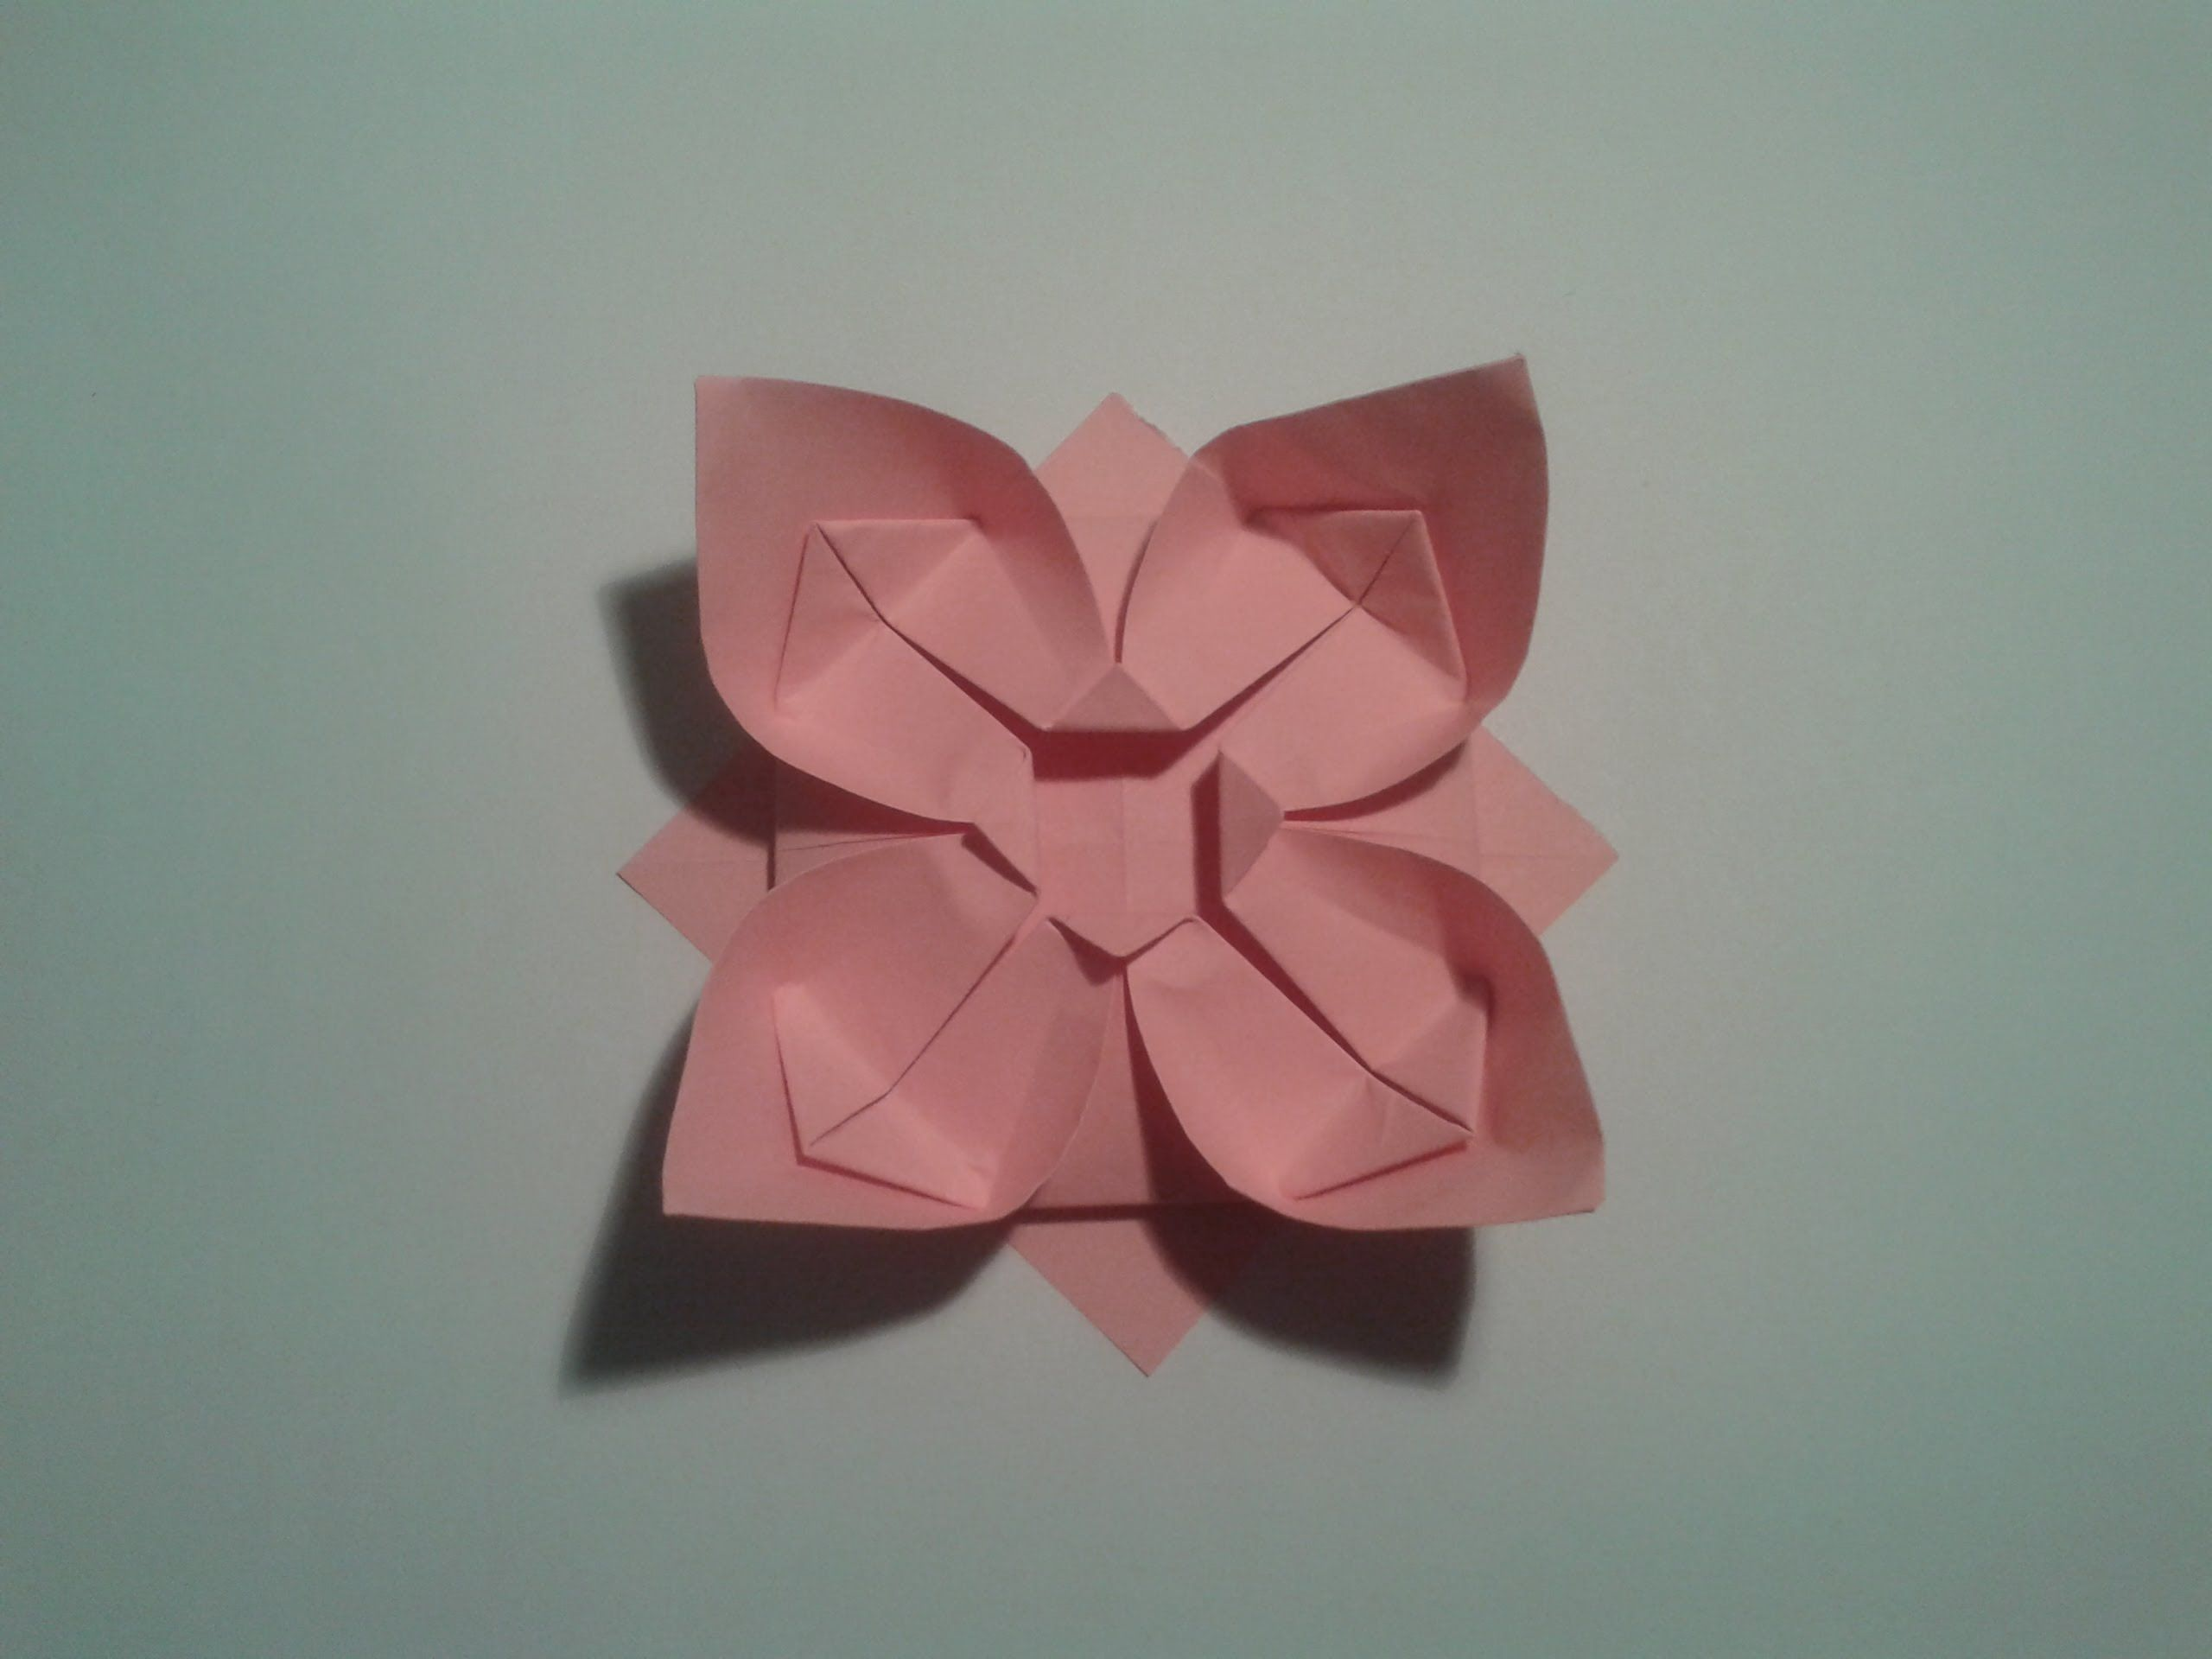 How to make an easy origami flower | origami | Pinterest ... - photo#21